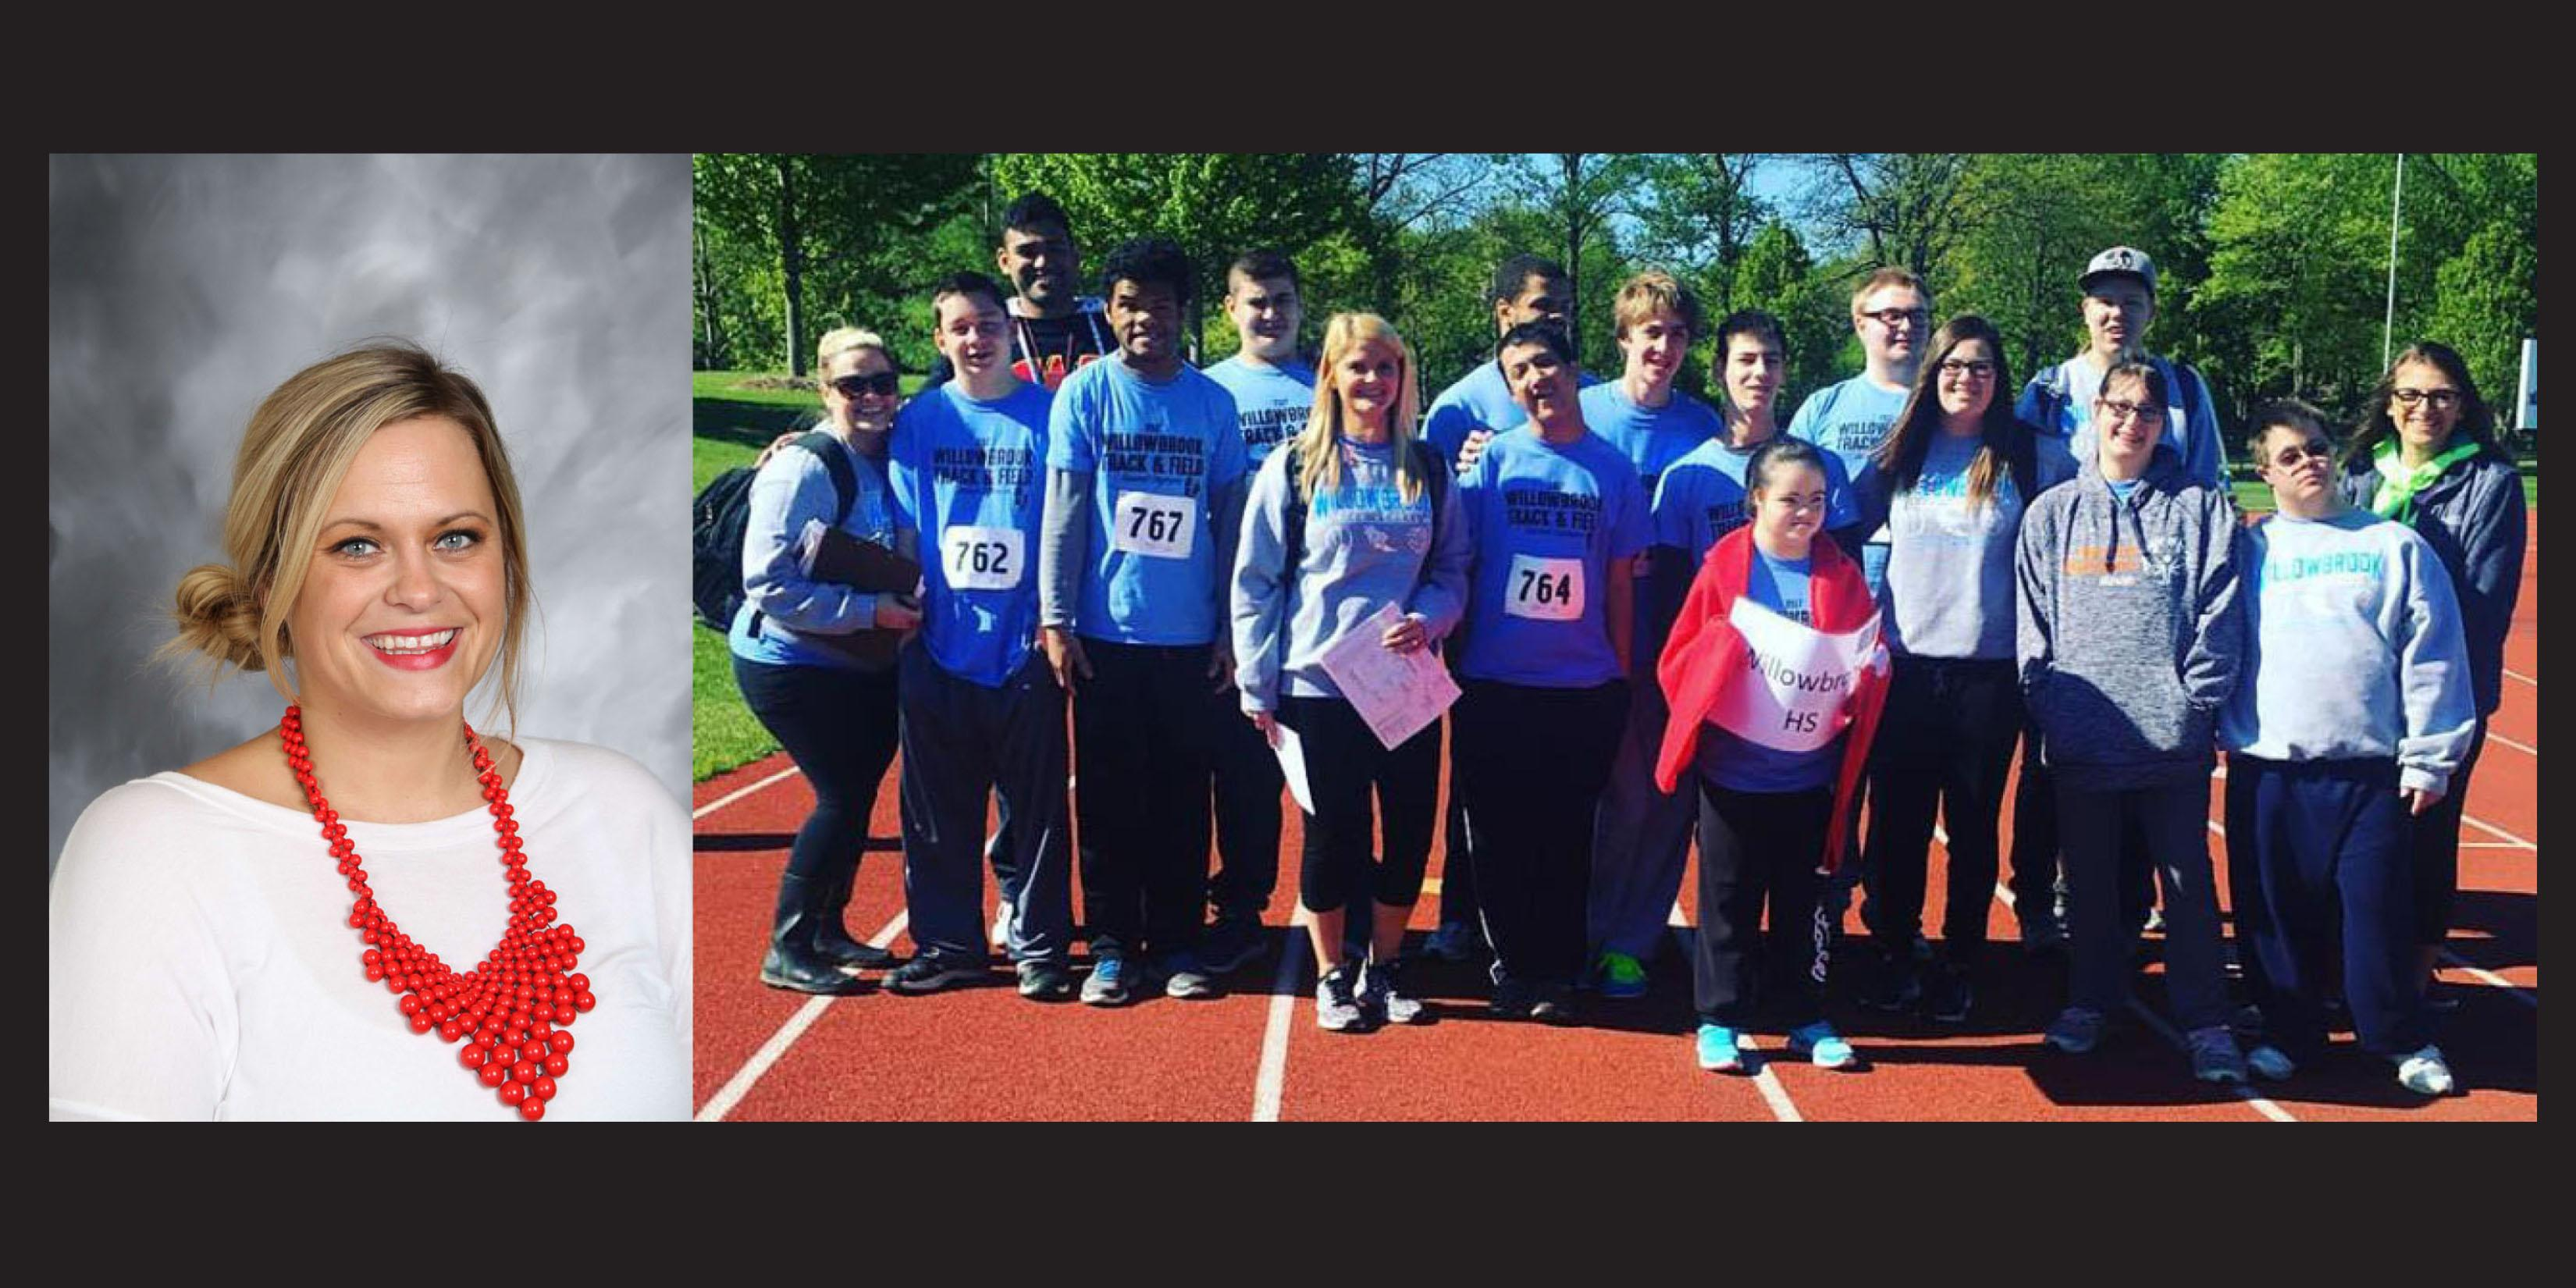 Willowbrook teacher named Head Coach of Illinois Athletics Team for Special Olympics USA Games